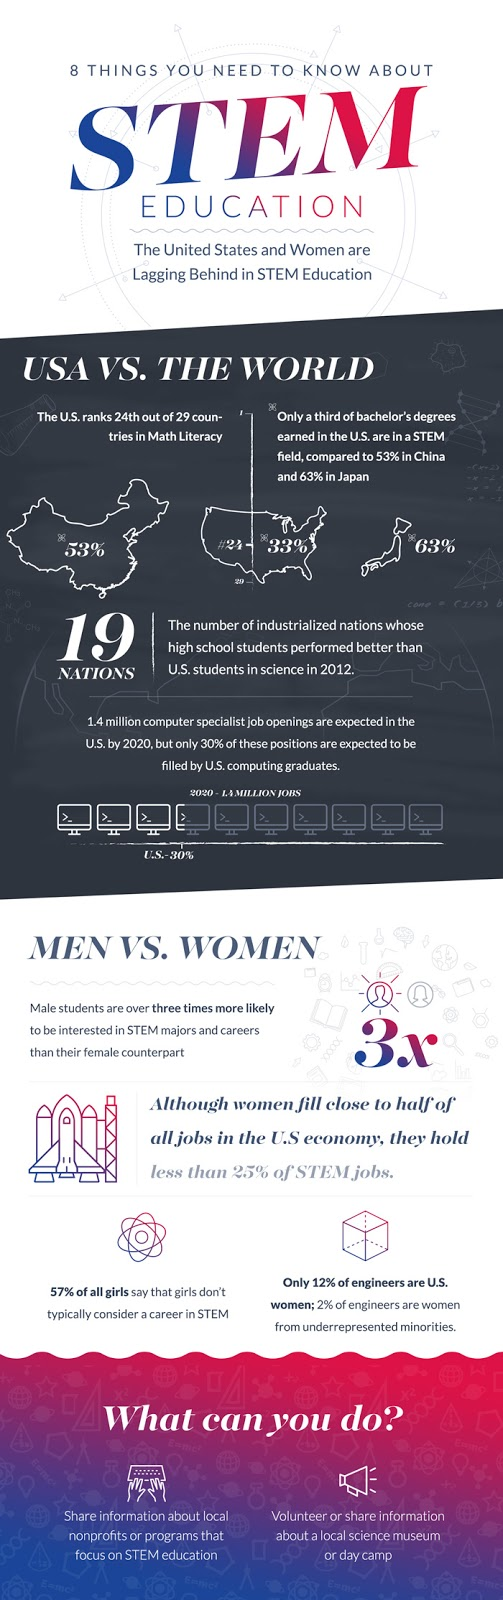 infographic, stem, woman engineer, woman, science, technology, math